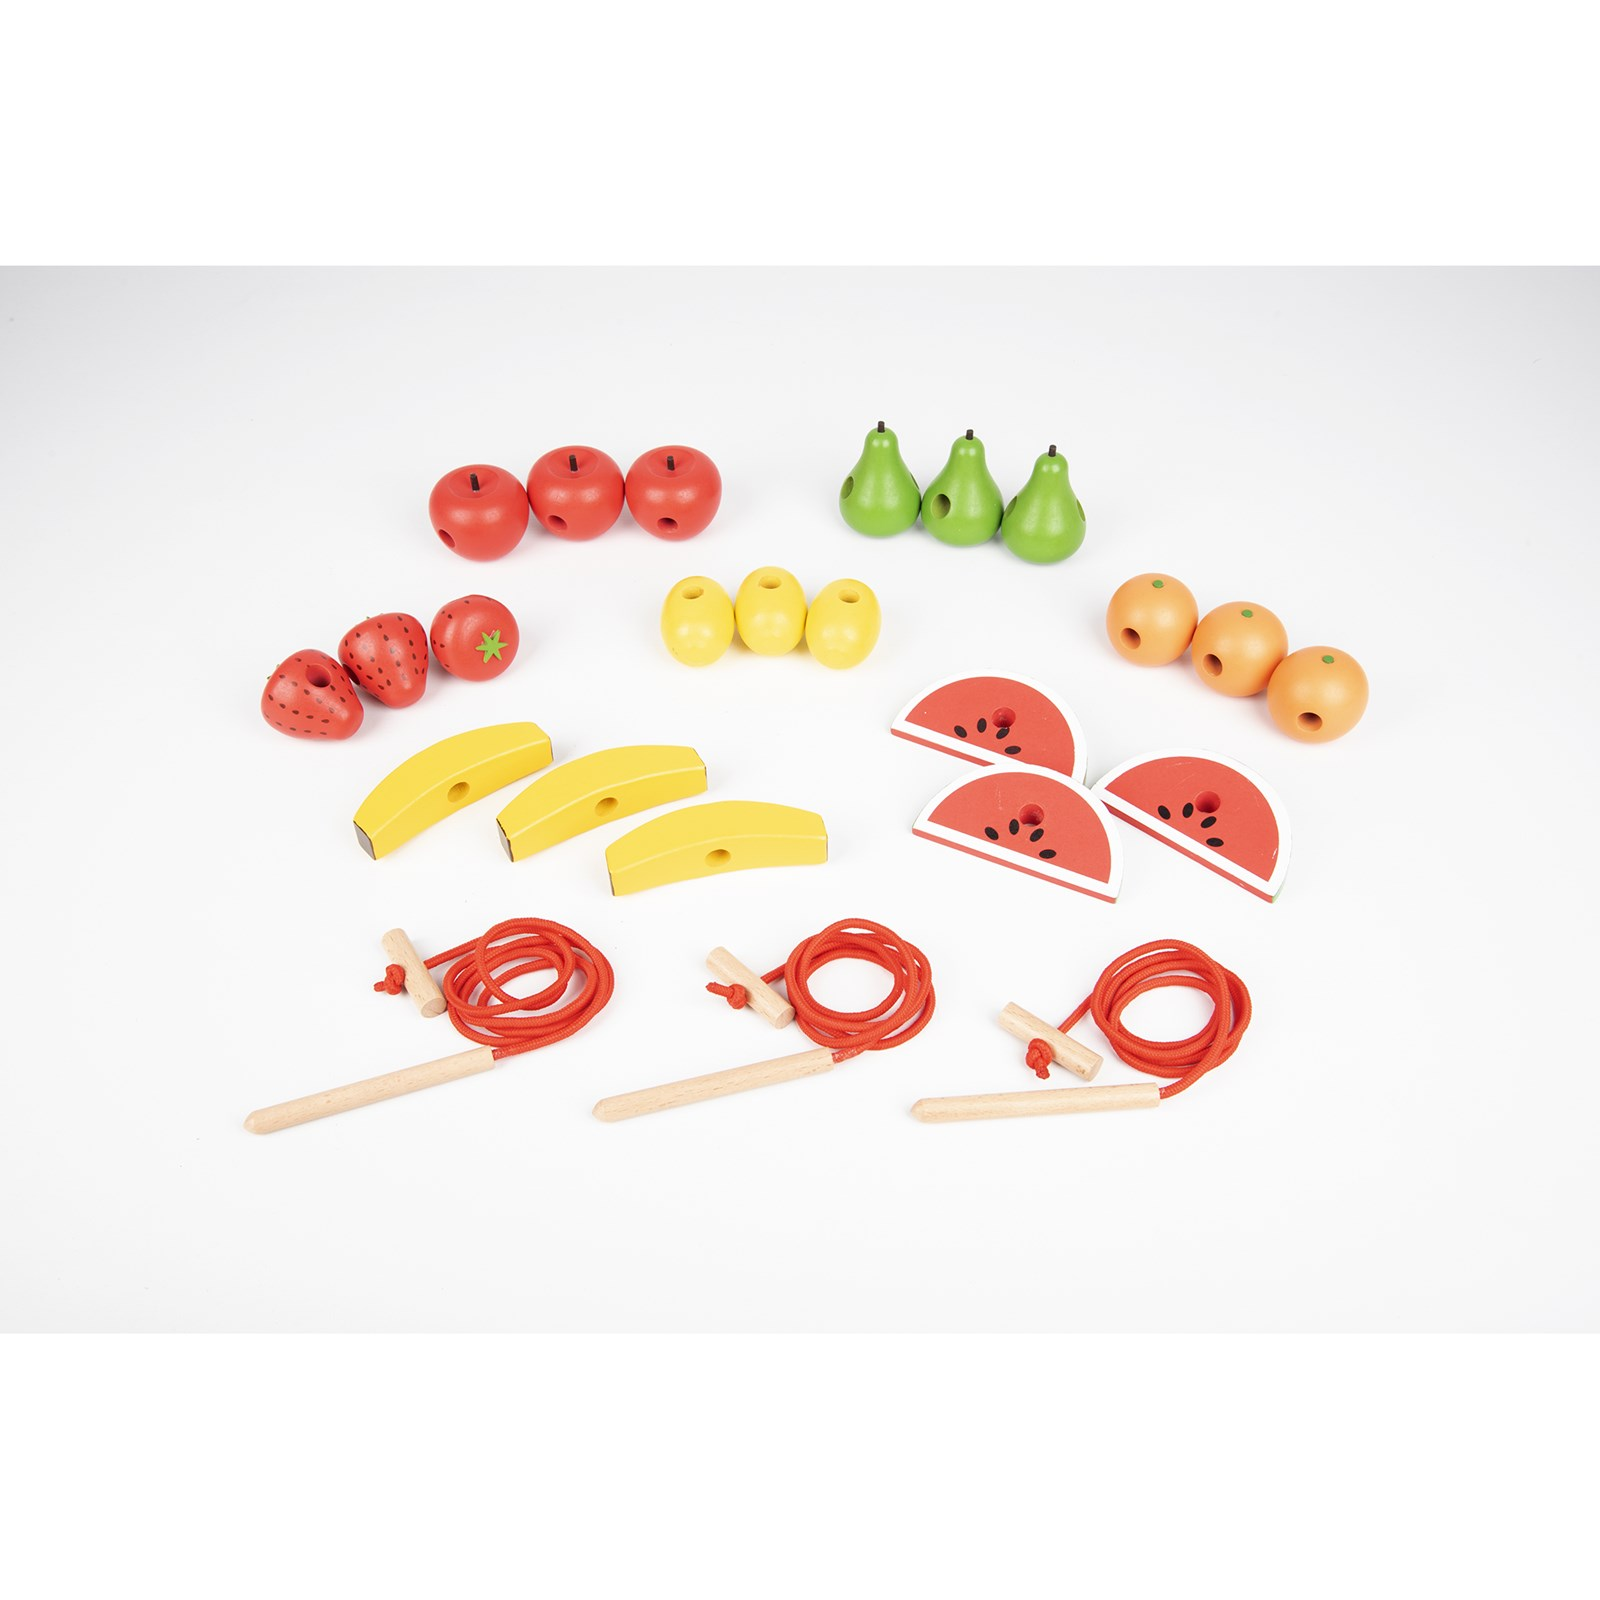 Wooden Lacing Fruits